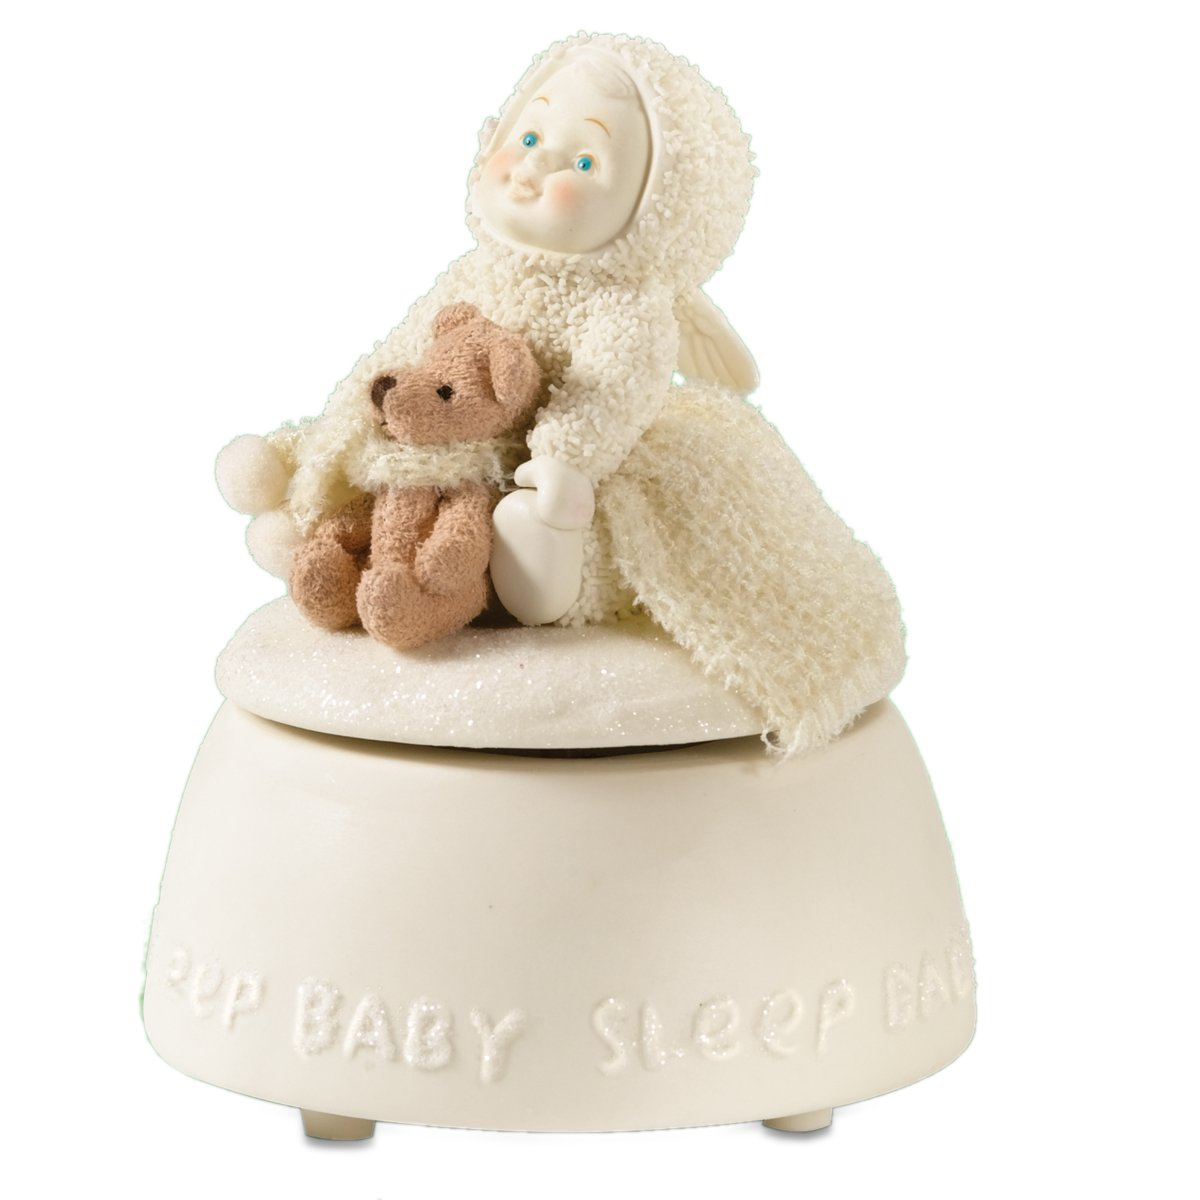 印象のデザイン Department Department B000Q7Q2VI 56 Snowbabies Celebrations Sleep Baby Sleep音楽ボックス Sleep B000Q7Q2VI, スリッパ Online Shop:36b0c4e2 --- arcego.dominiotemporario.com